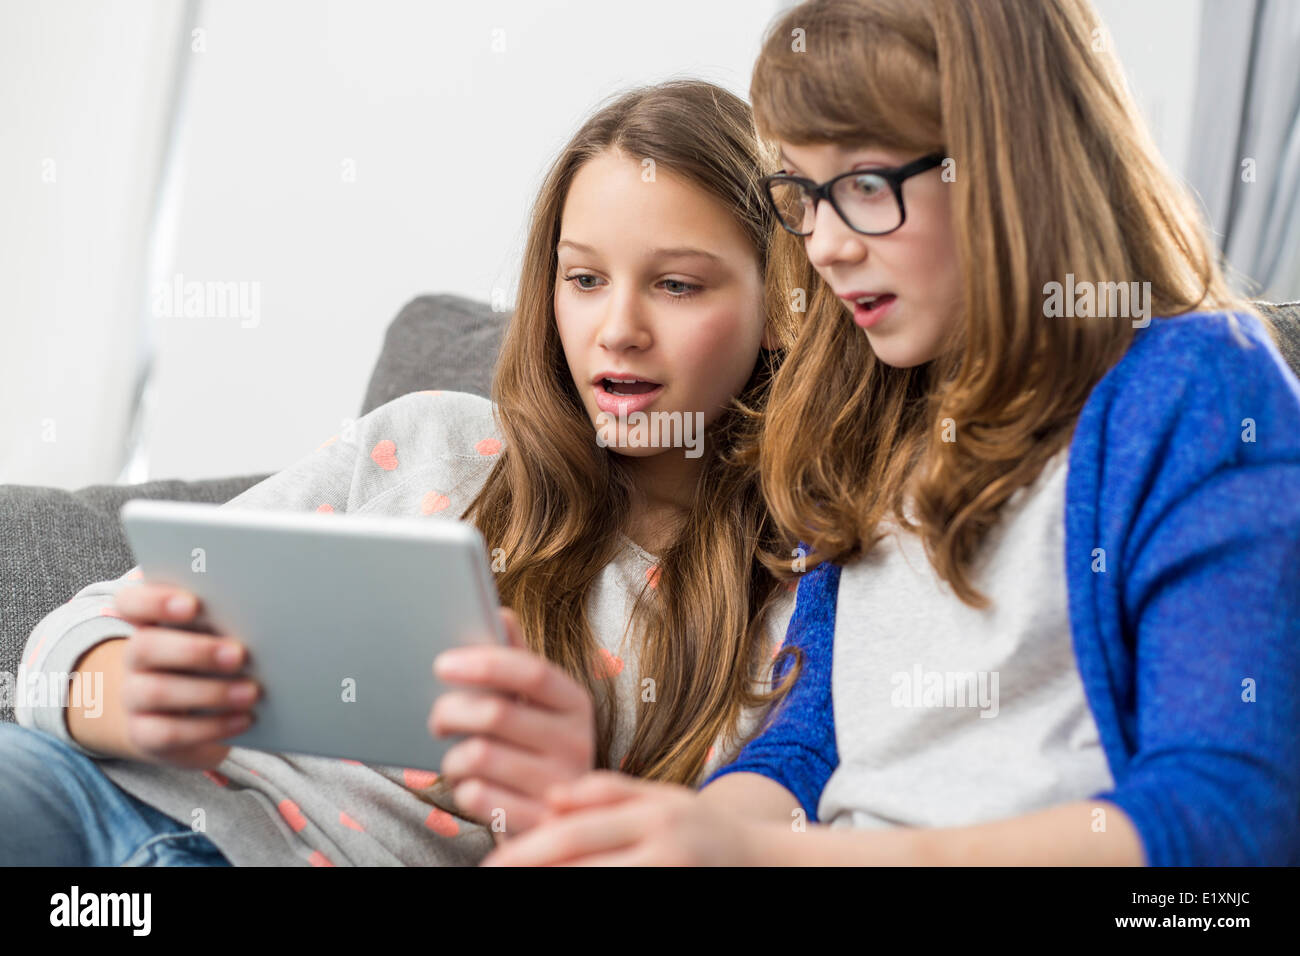 Shocked sisters using digital tablet on sofa at home - Stock Image